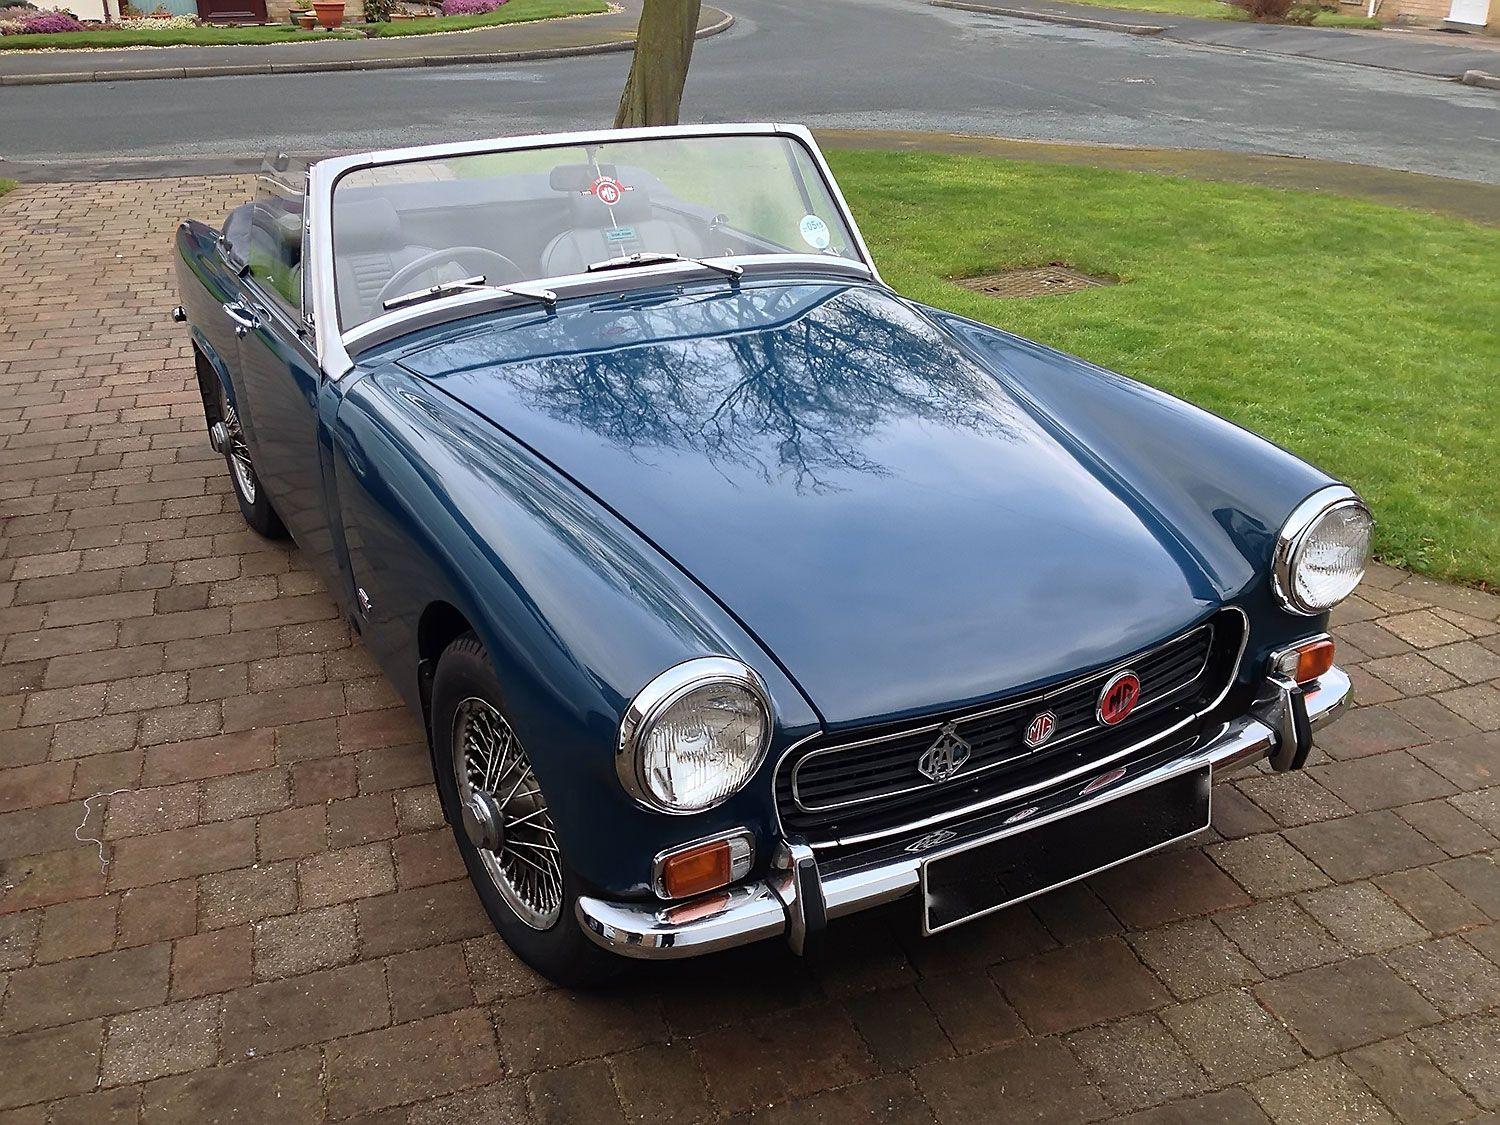 Classic MG Midget classic car for sale from KAD Classics ...